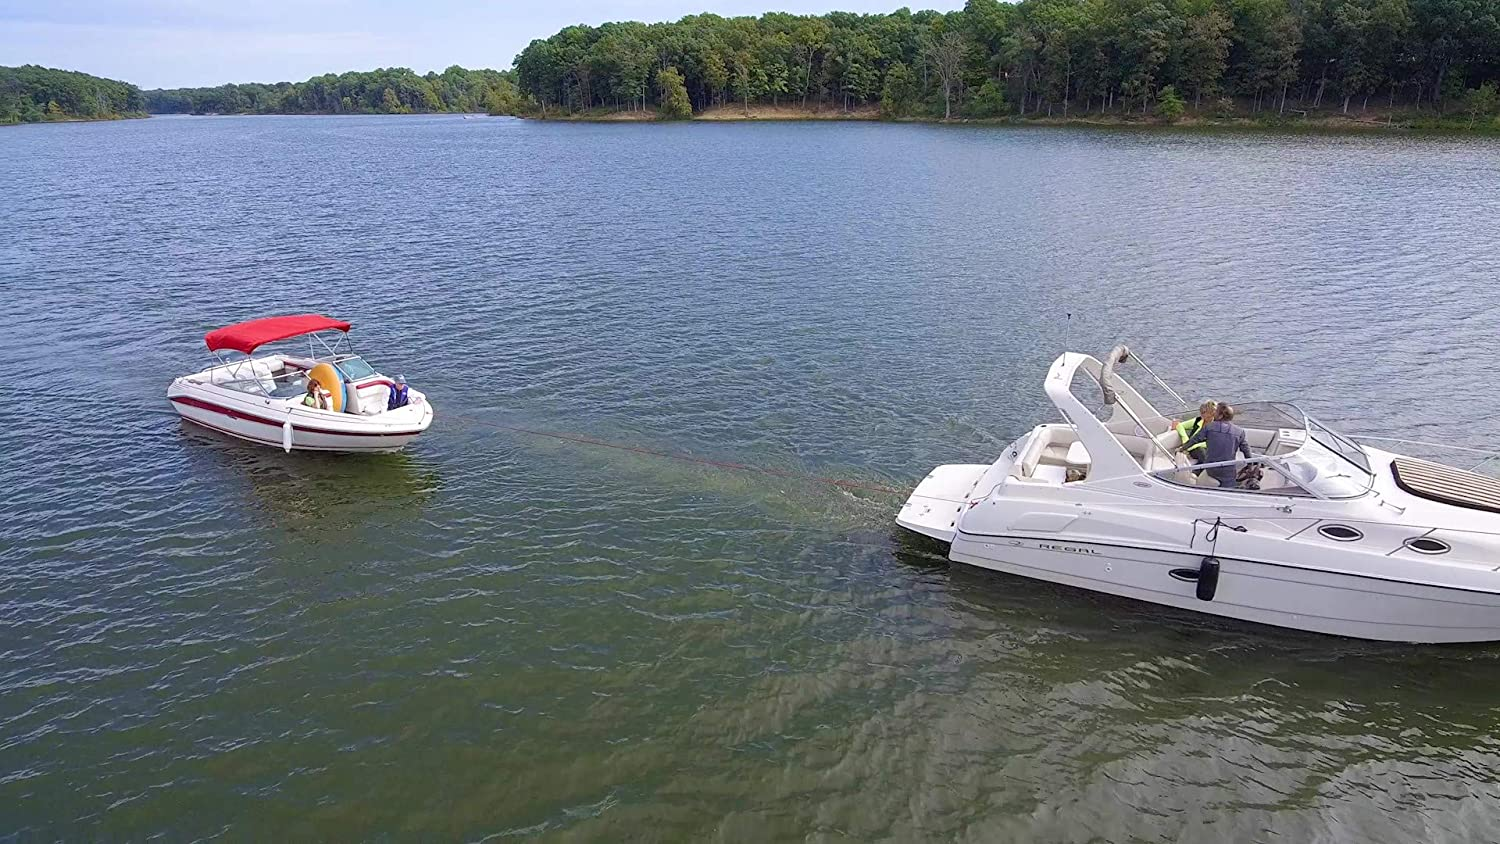 HEDZUP Boater Disabled TowMe Safety Flag They Wont Tow if They Dont Know